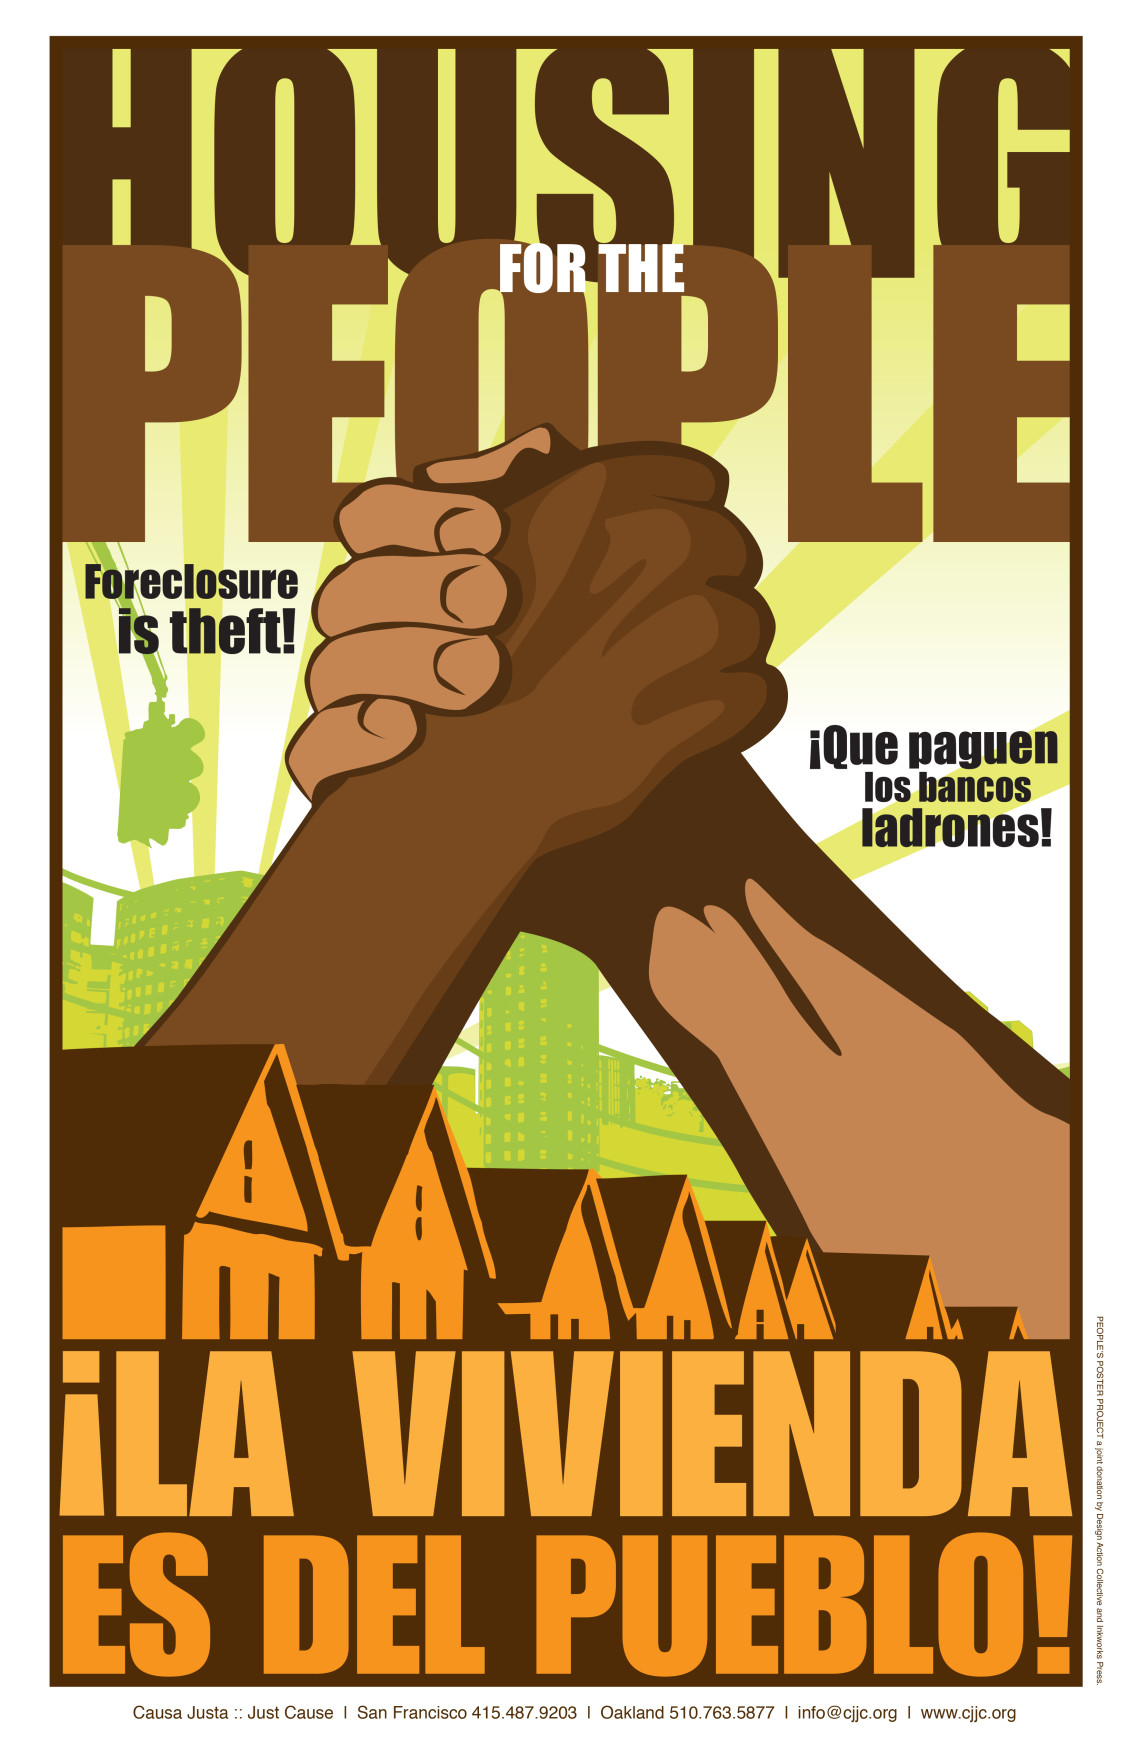 Housing for the People